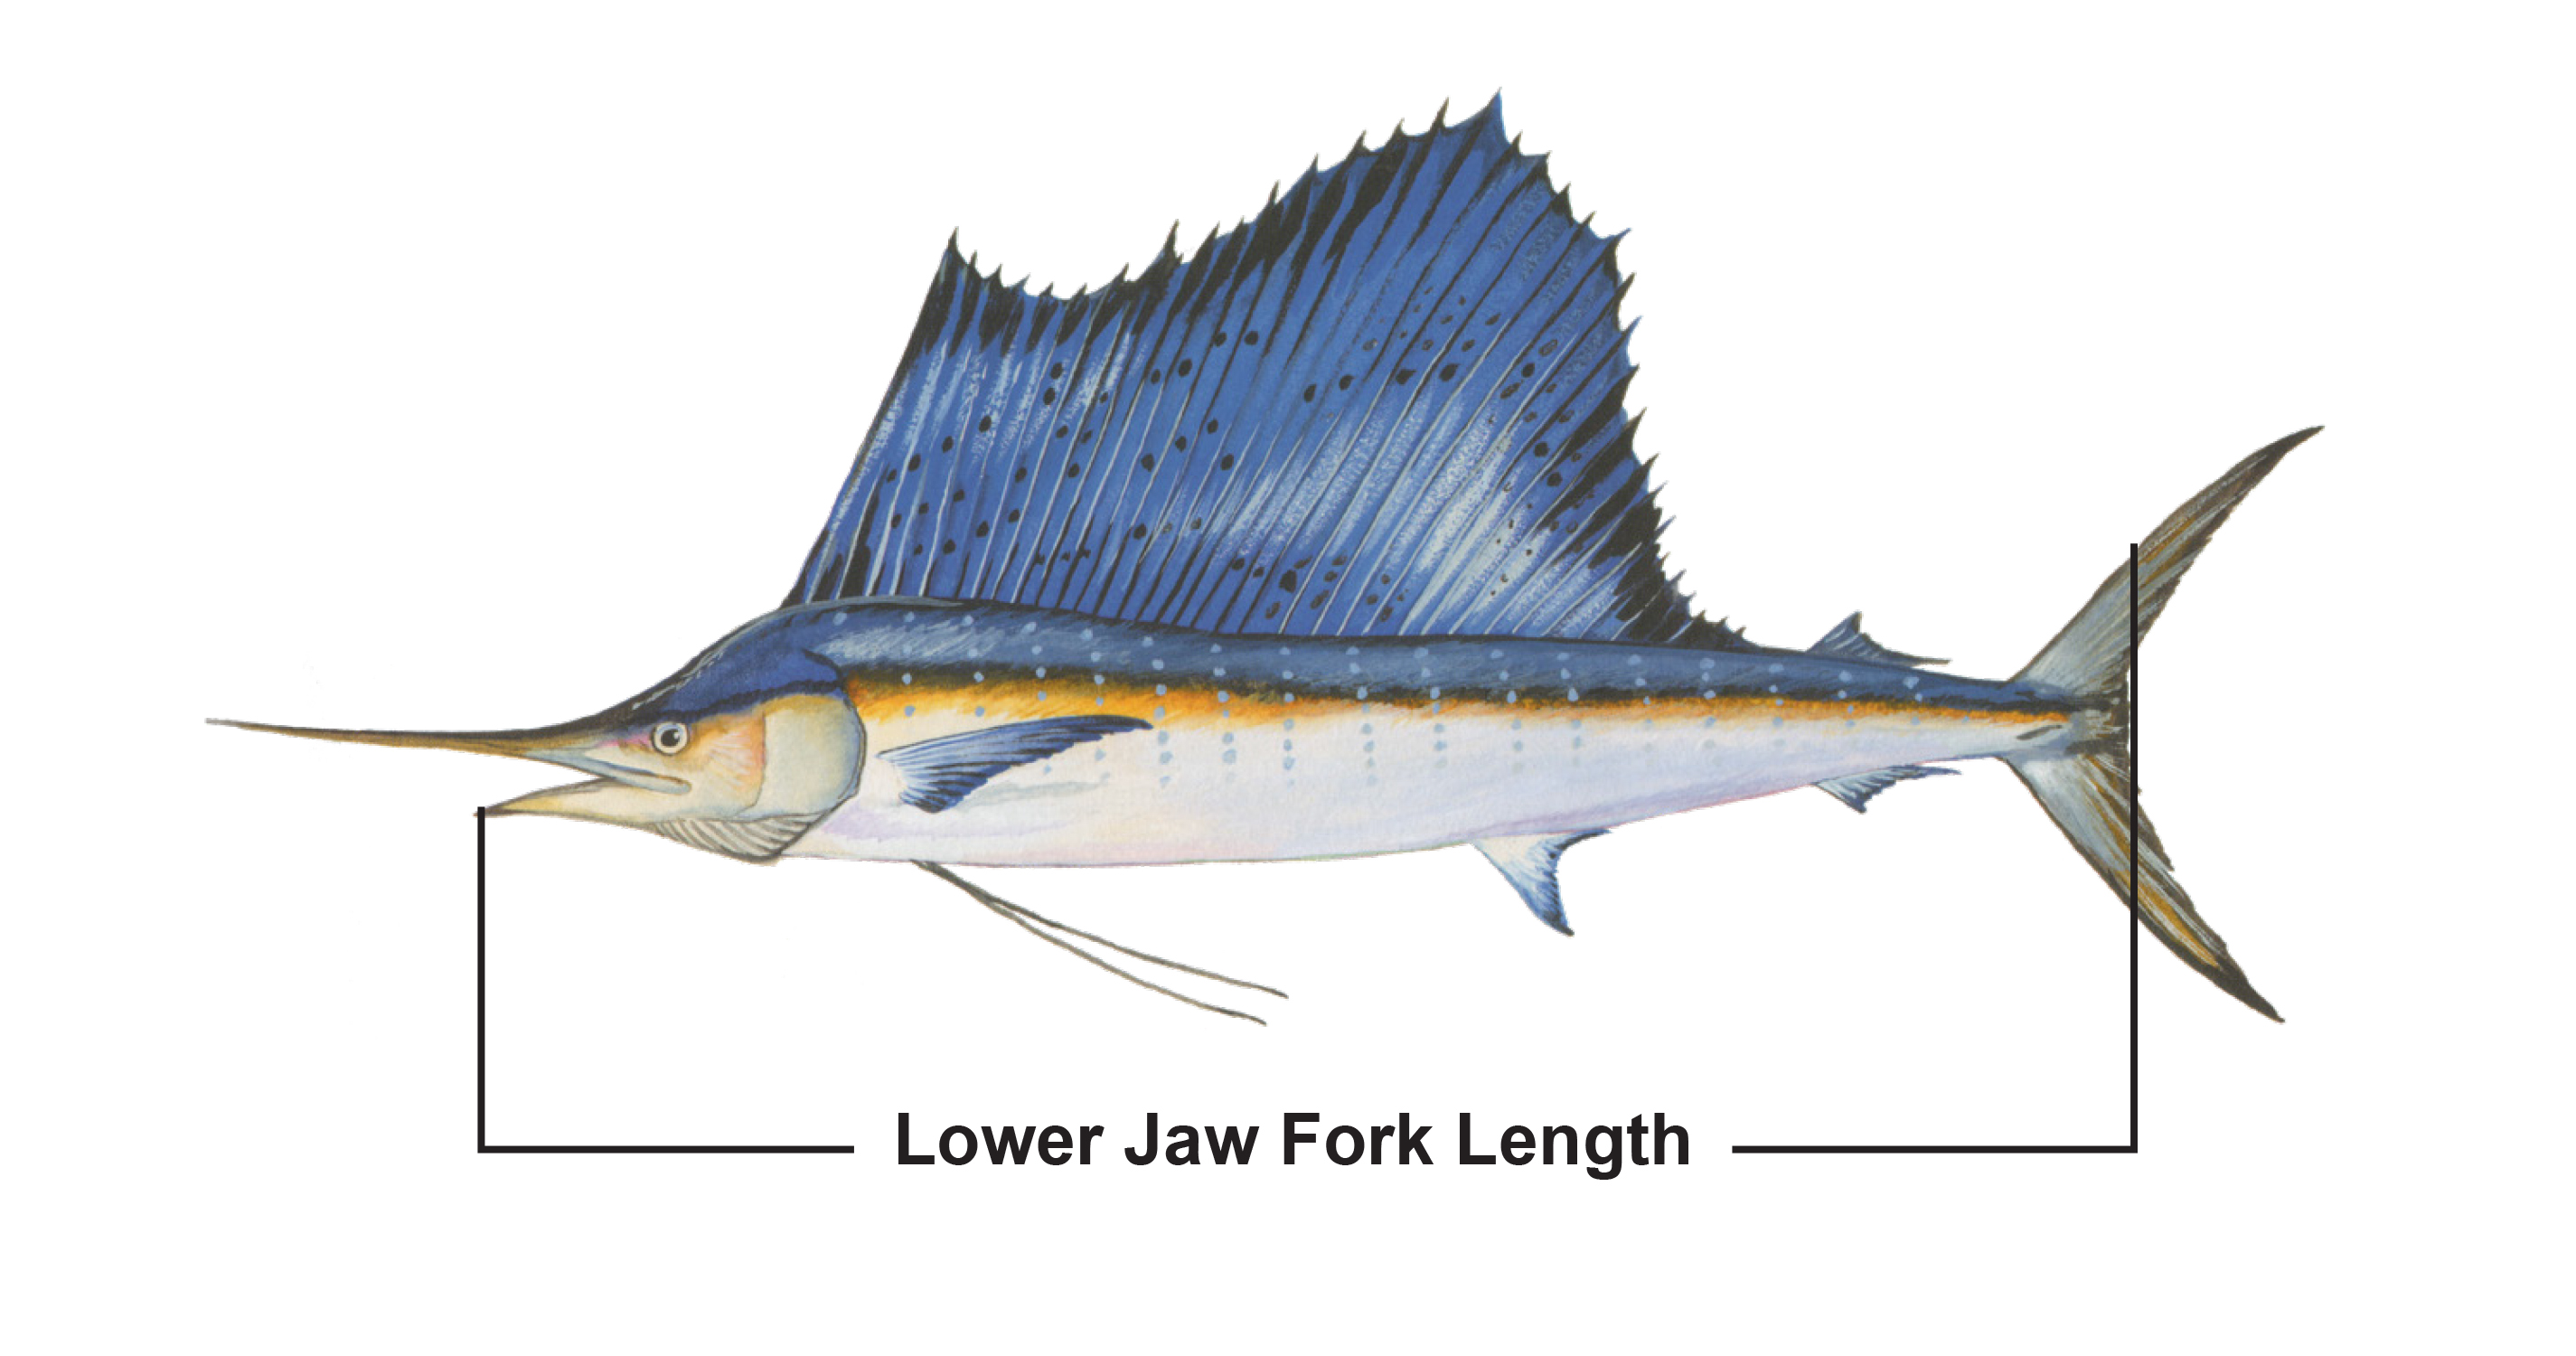 Lower jaw fork length